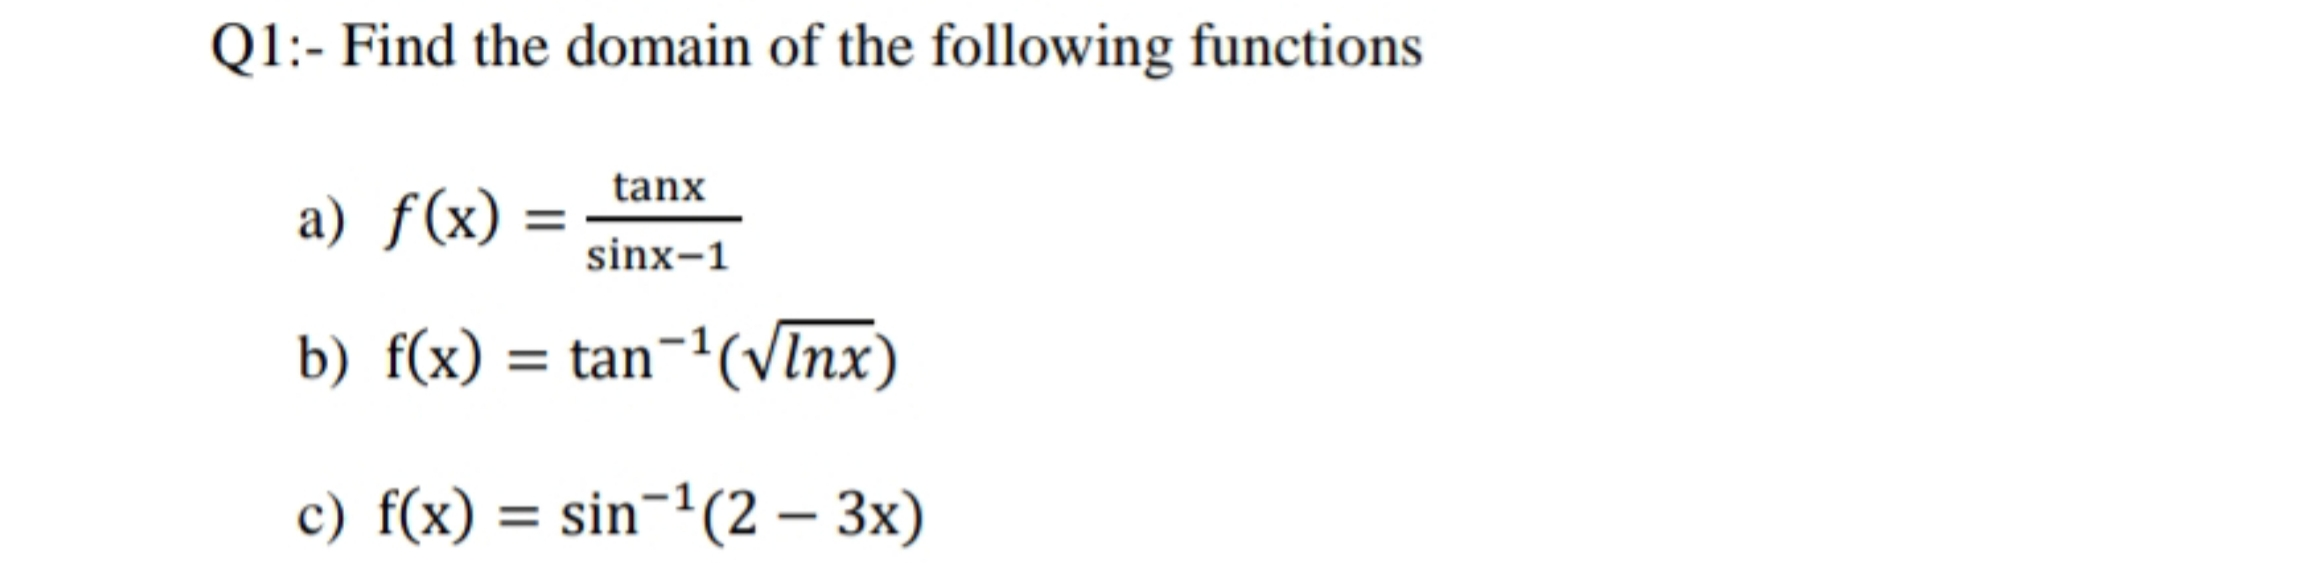 Q1:- Find the domain of the following functions tanx a) f(x) sinx-1 b) f(x) tan-(vInx) c) f(x) sin-(2 3x)